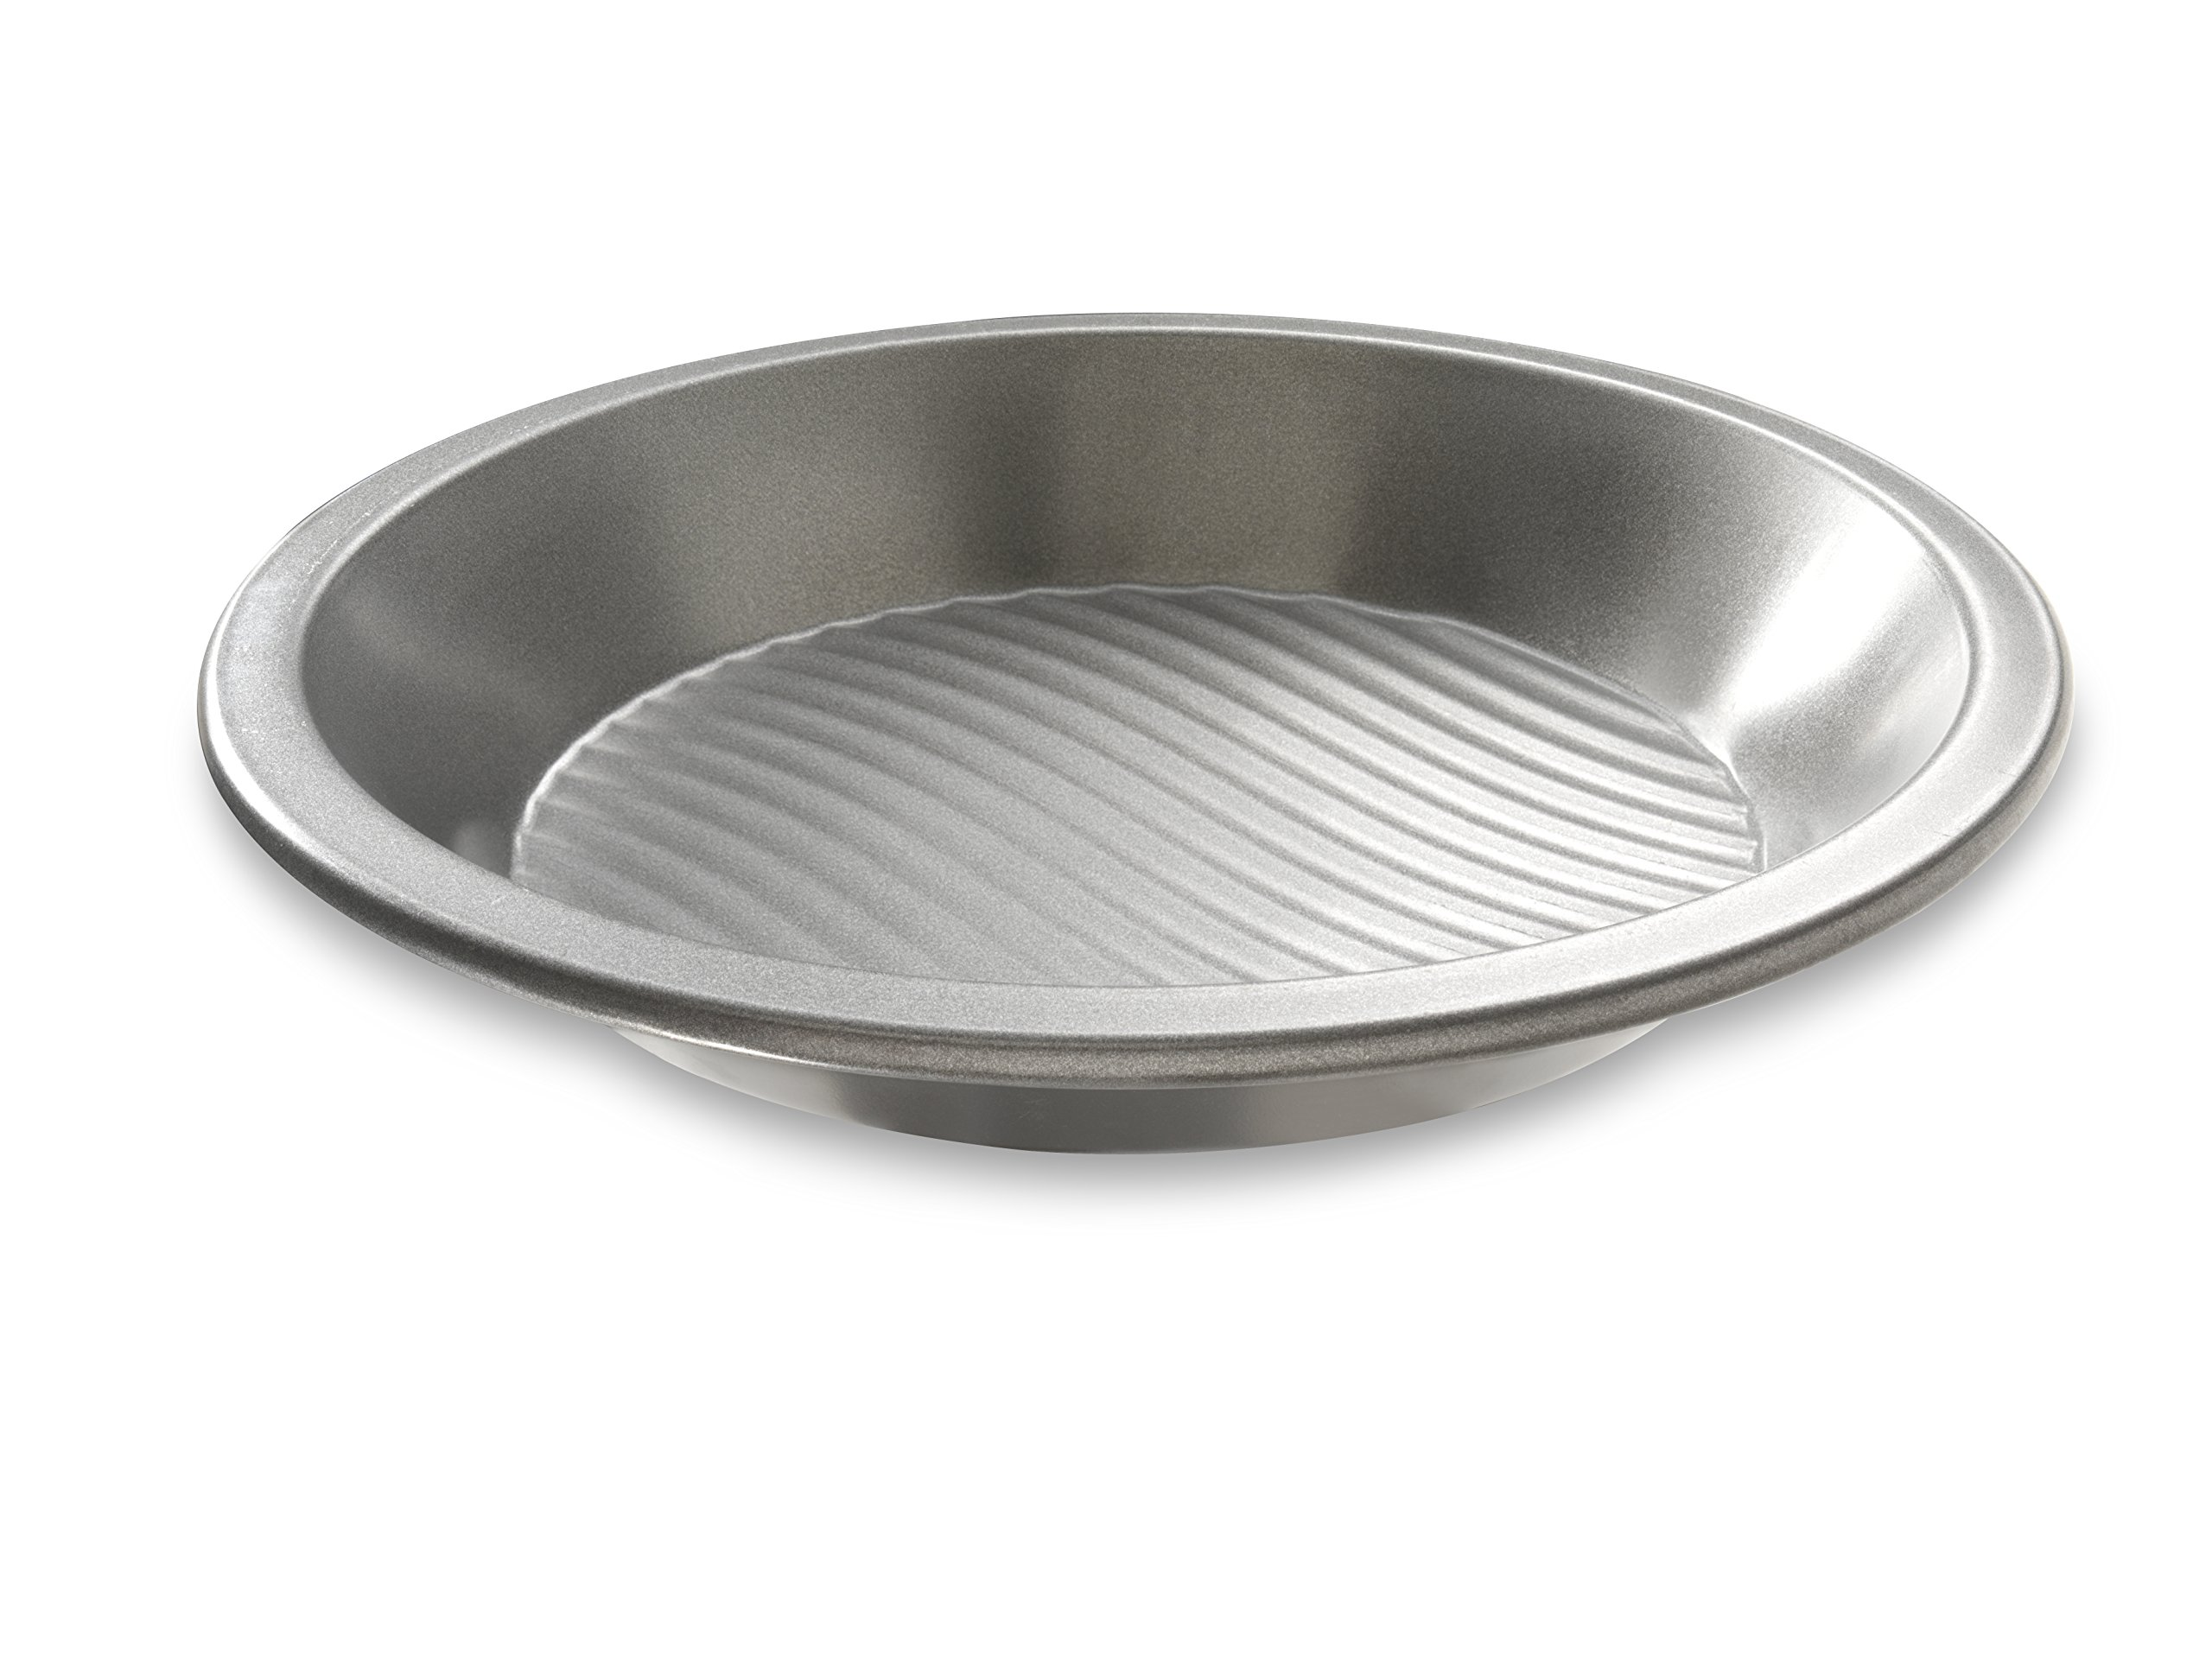 USA Pan Patriot Pan Bakeware Aluminized Steel 9-Inch Round Pie Pan by USA Pan